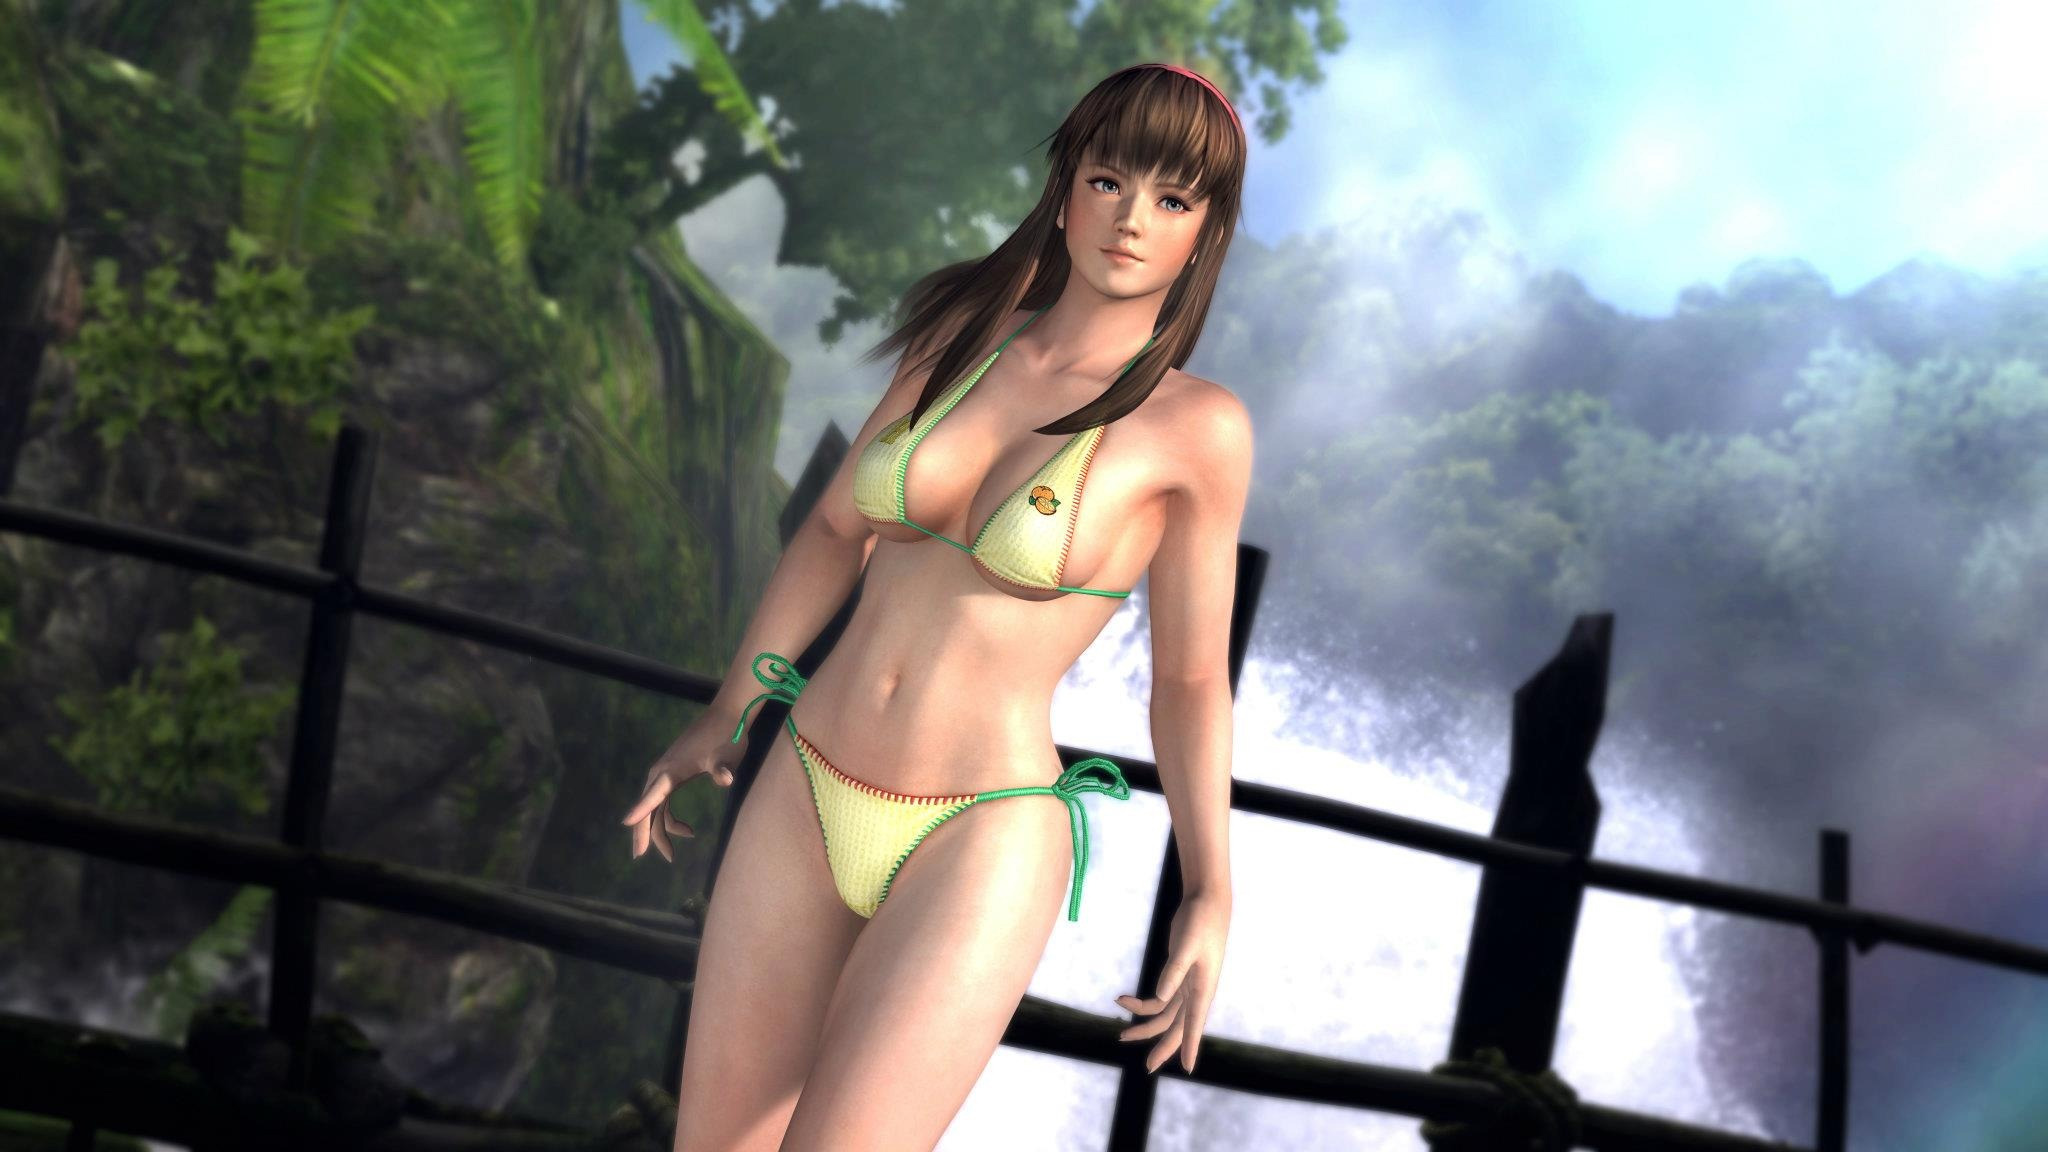 DOA 5 returns to the ring   GAMING TREND HD Wallpaper